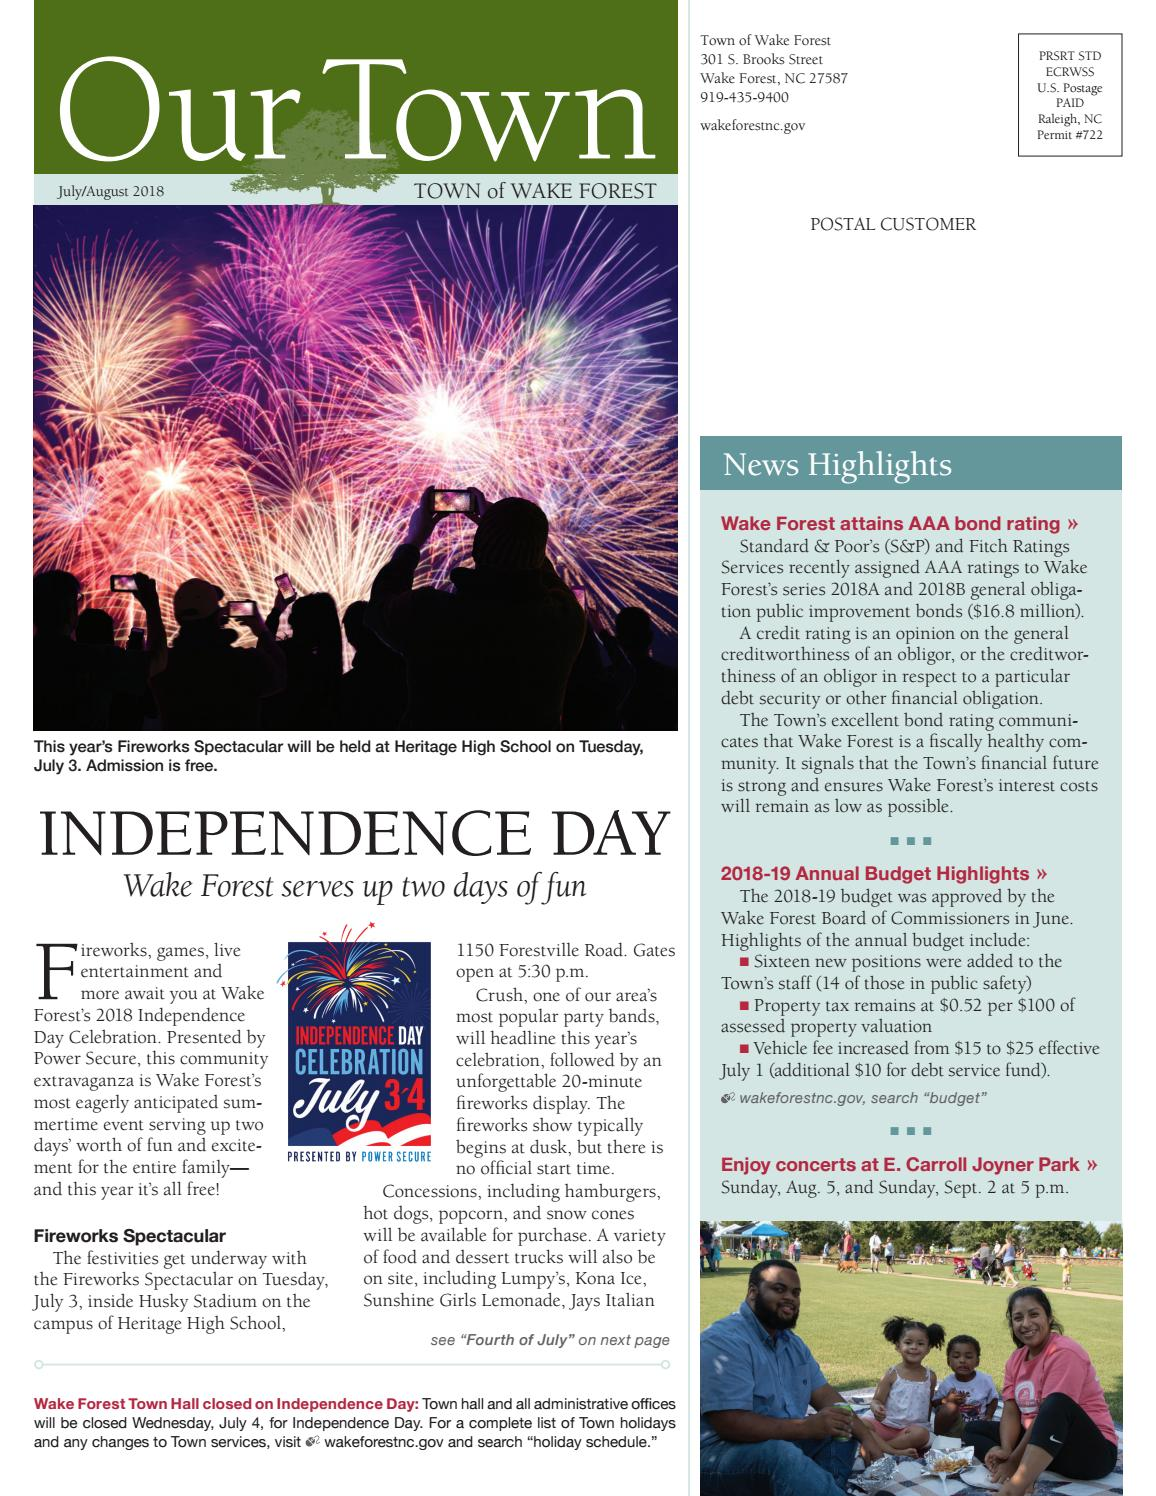 Our Town: JulyAug 2018 by Town of Wake Forest issuu